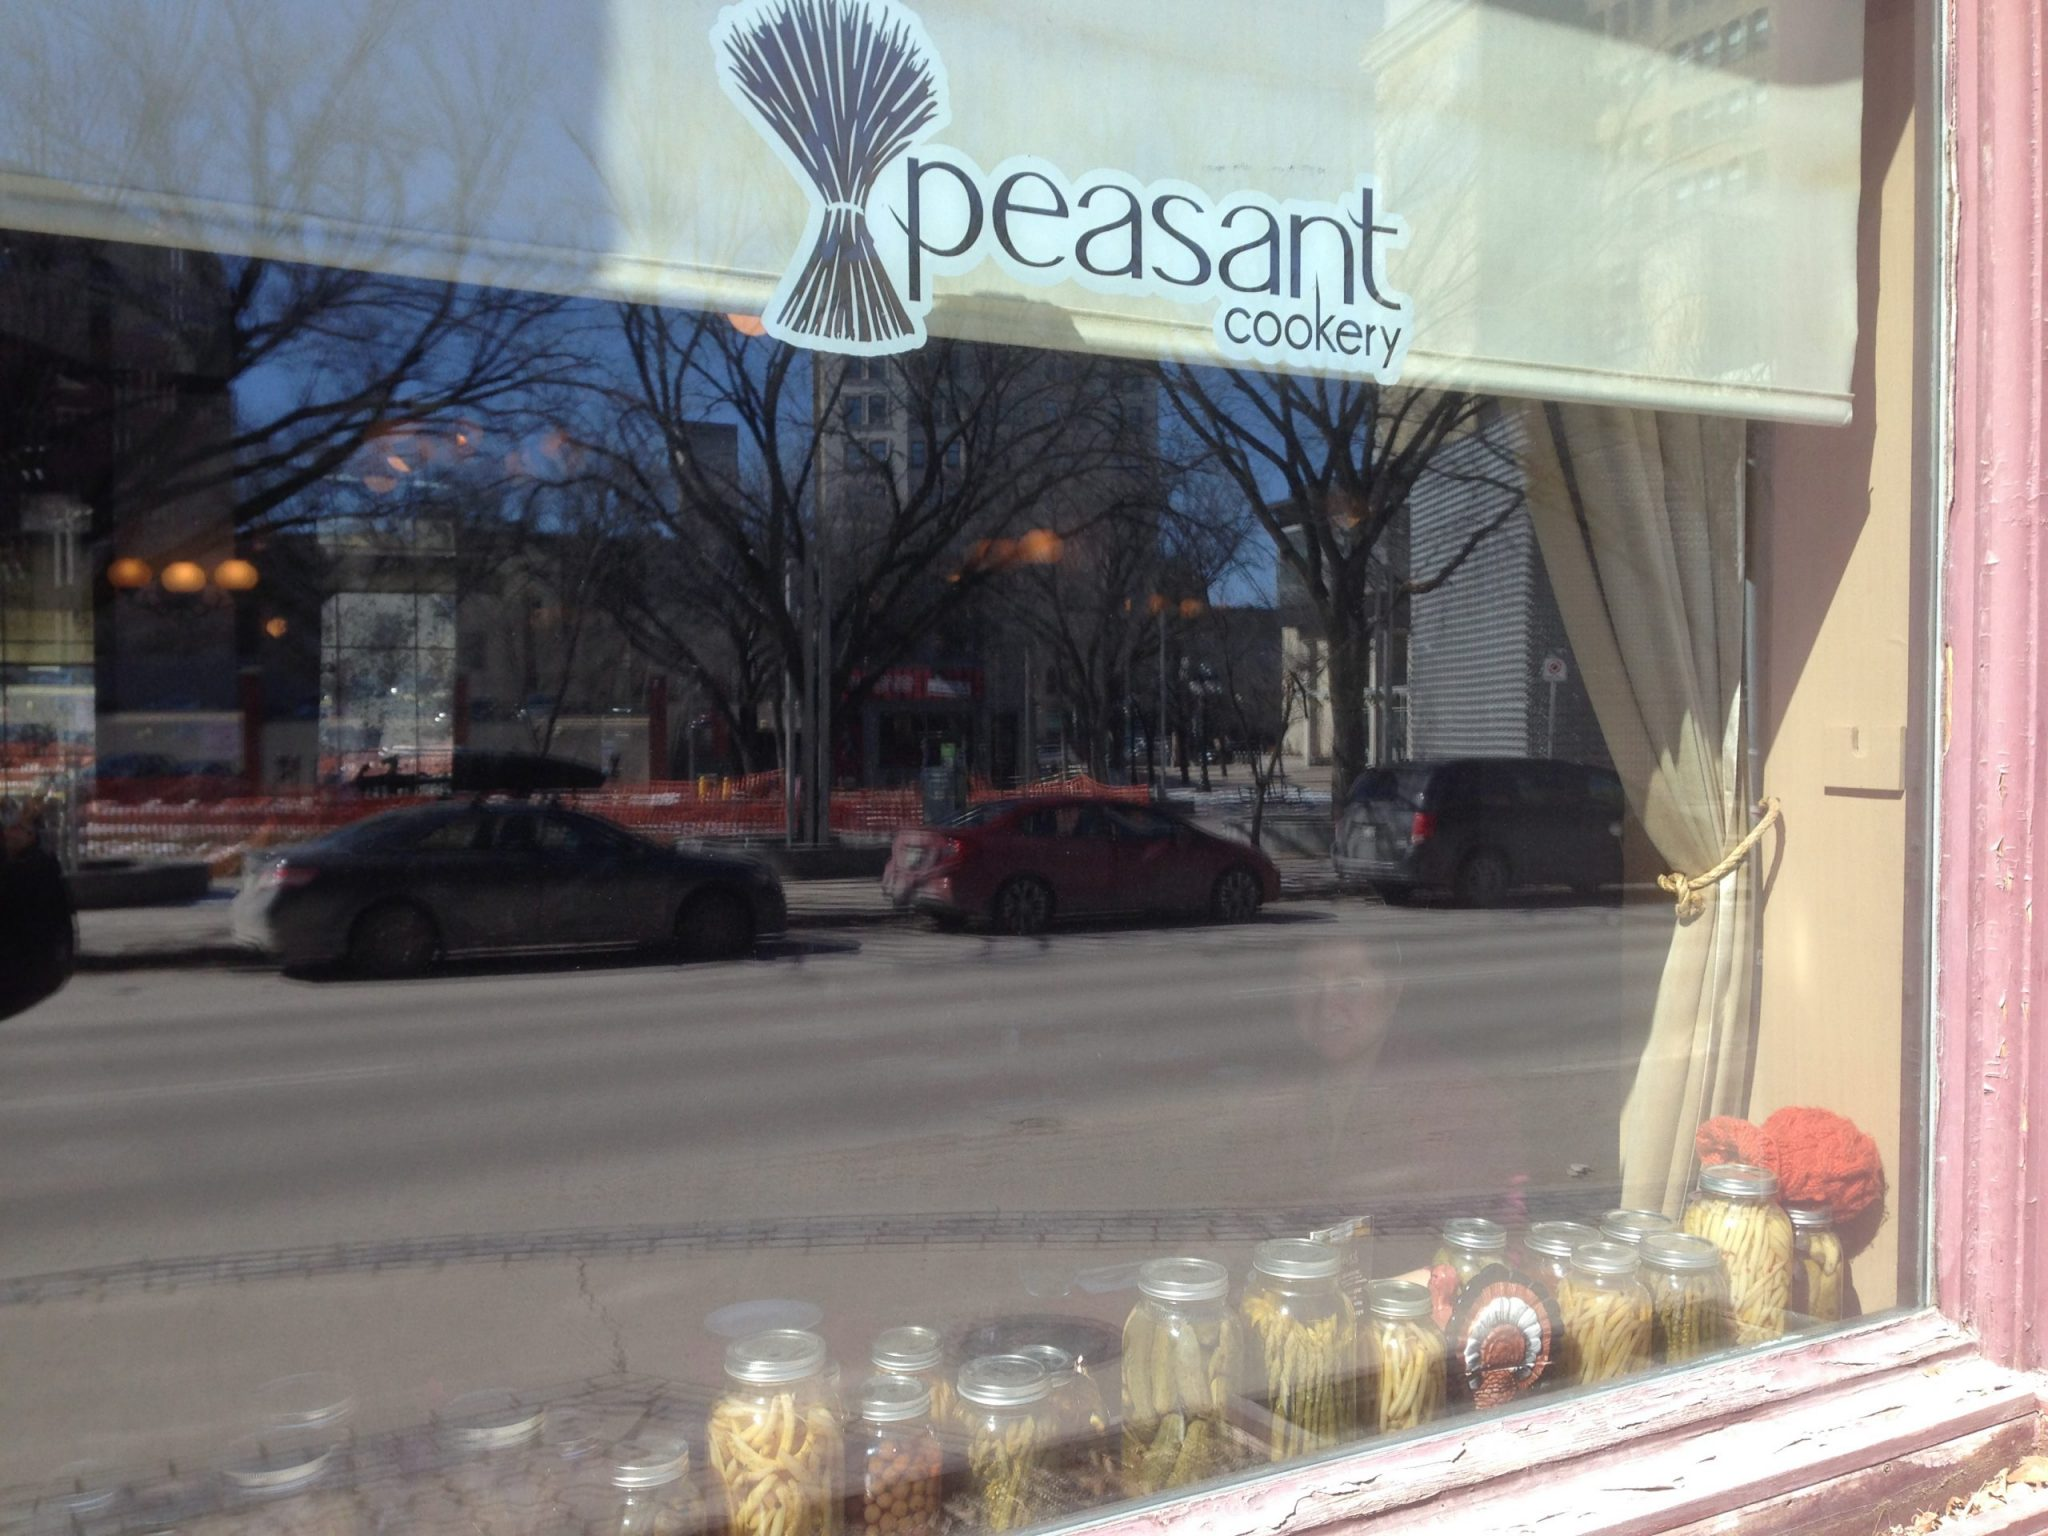 For a tasty bite to eat and one of the best things to do in Winnipeg, visit Peasant Cookery